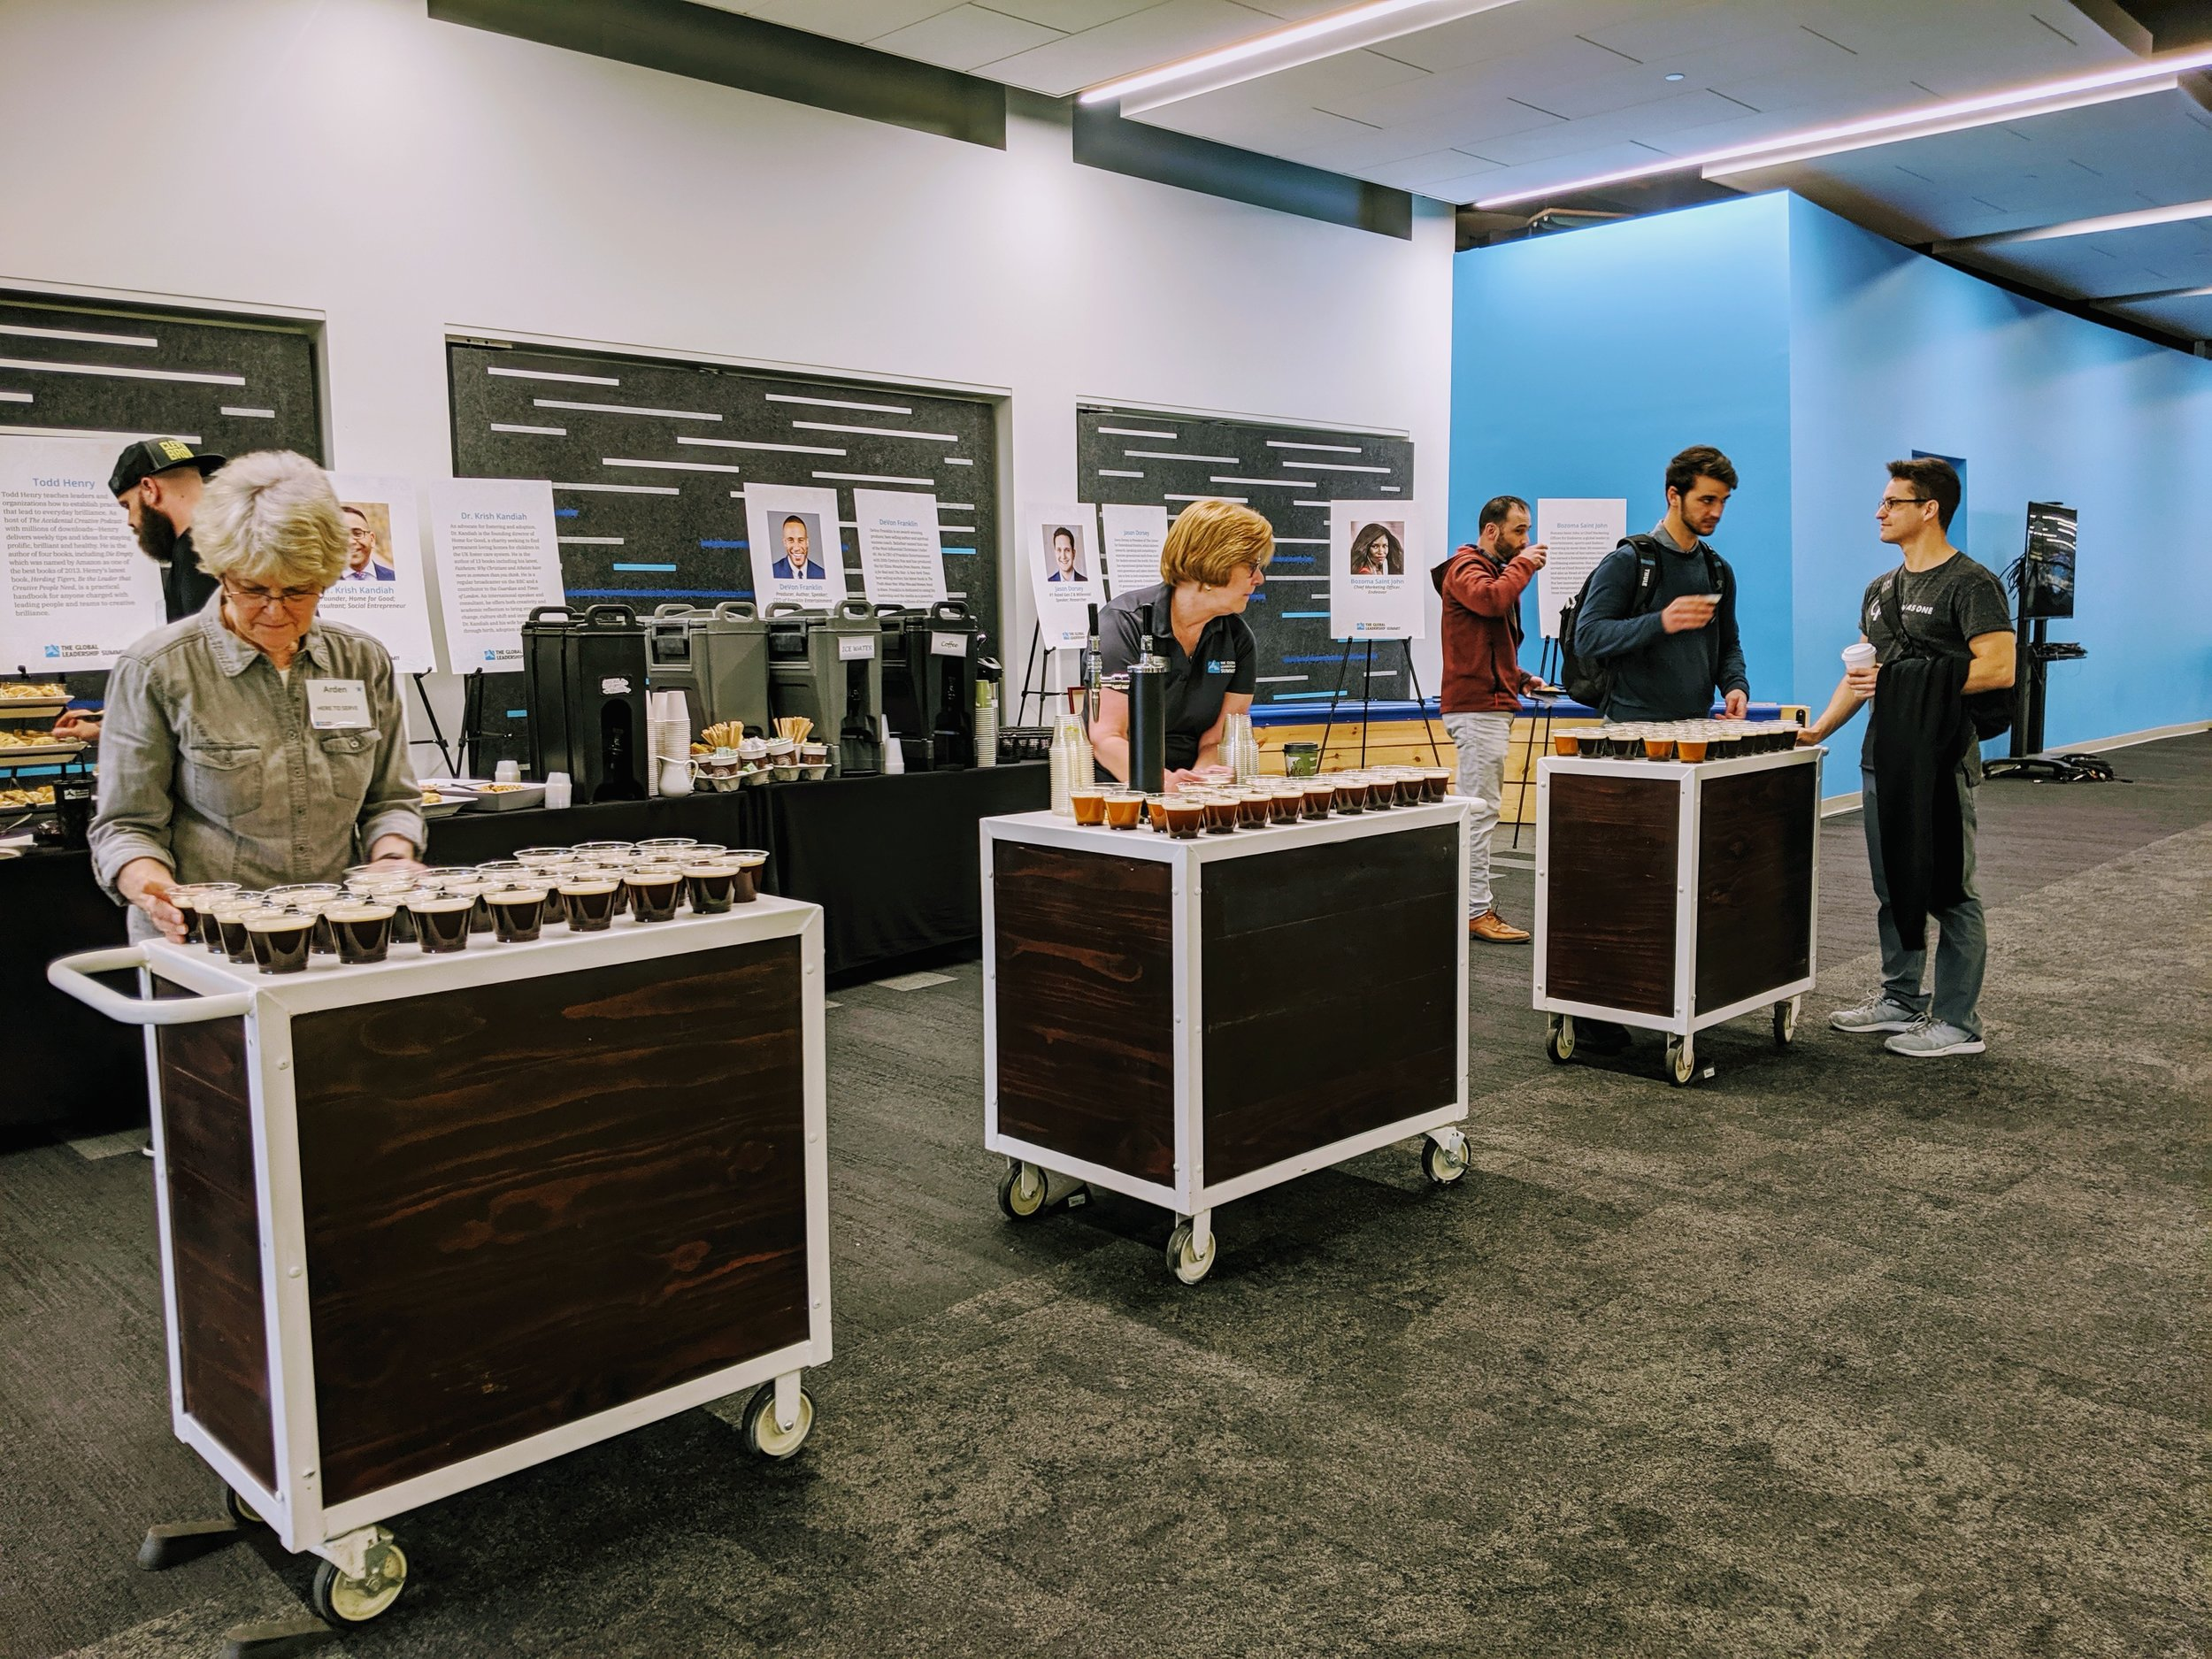 Our Cold-Brew Catering is a versatile drop-off/pick-up catering option that is perfect for large groups needing service in a short time-frame.